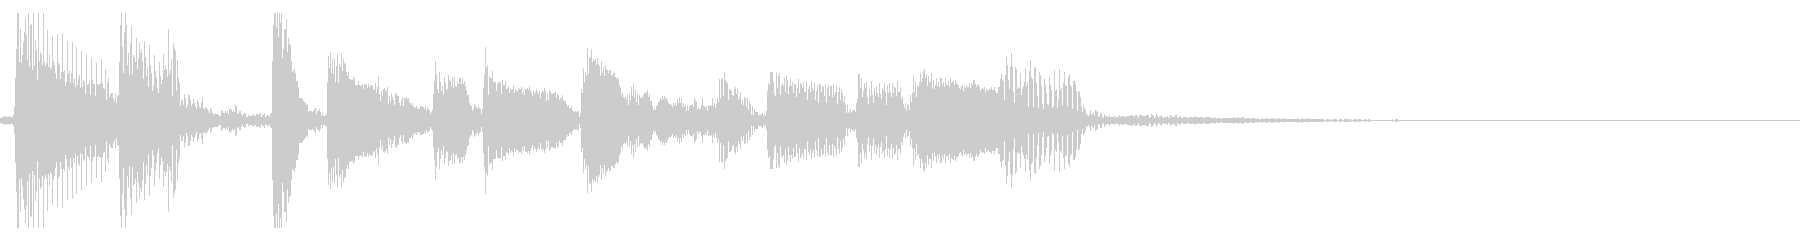 Live Acoustic Guitar Jingle 11 Blues's unreproduced waveform